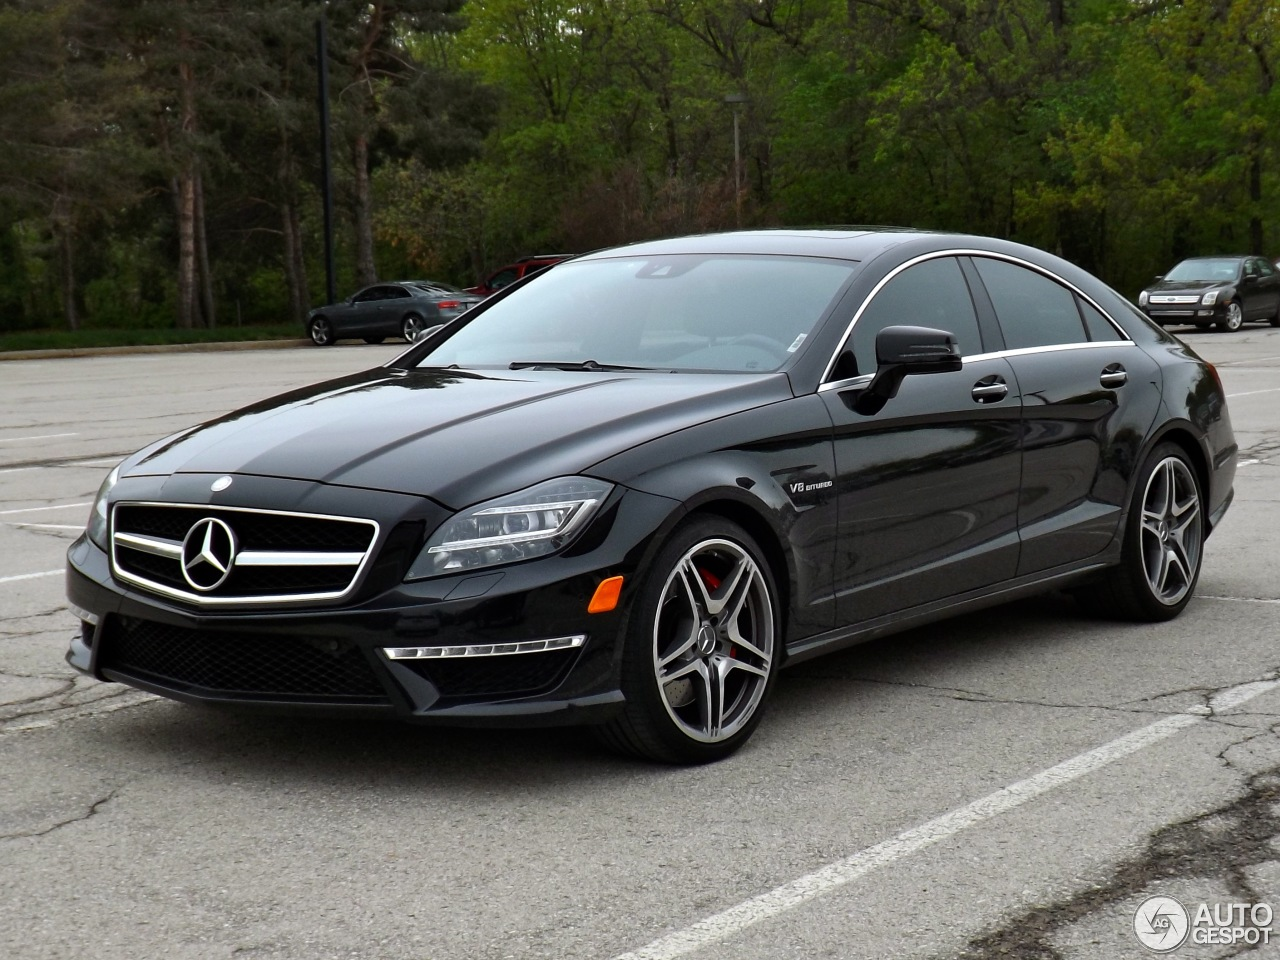 Mercedes benz cls 63 amg c218 11 may 2013 autogespot for Mercedes benz cls 63 amg price